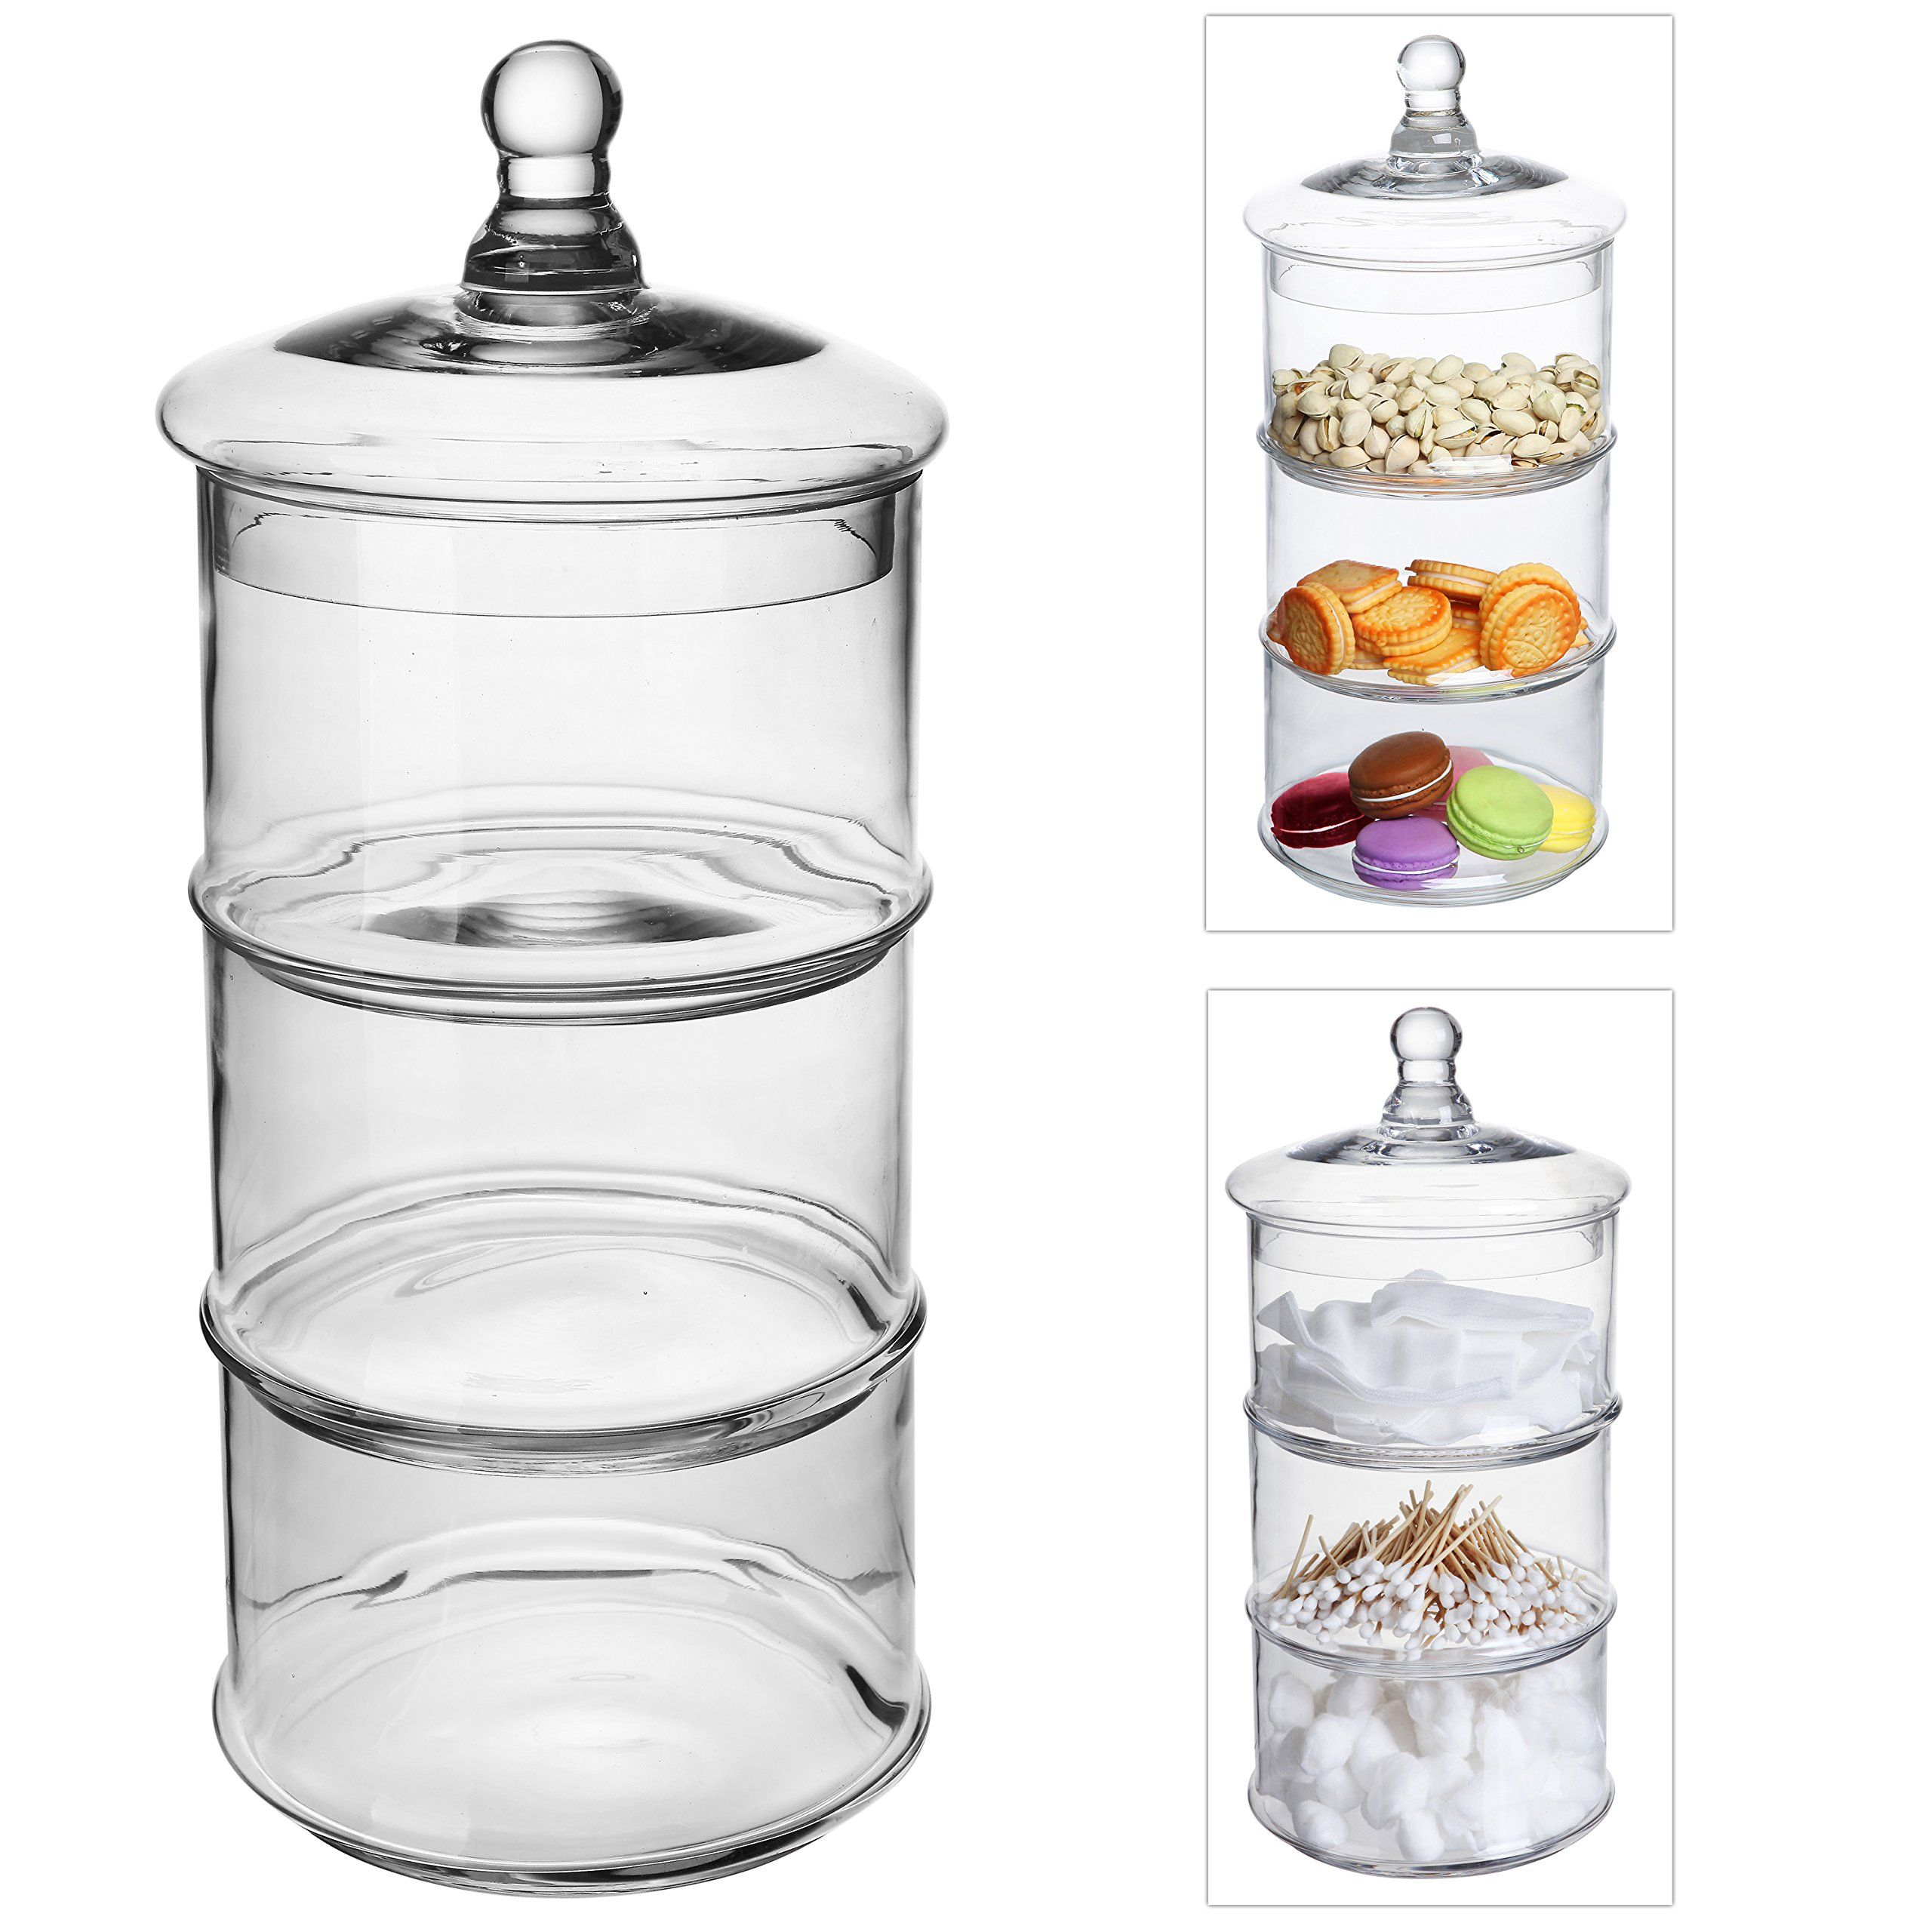 Amazon Com Decorative Lidded Large 3 Tier Stackable Clear Glass Candy Dishes Cookie Holder Apothecary Jars Mygift Jar Kitchen Jars Apothecary Jars